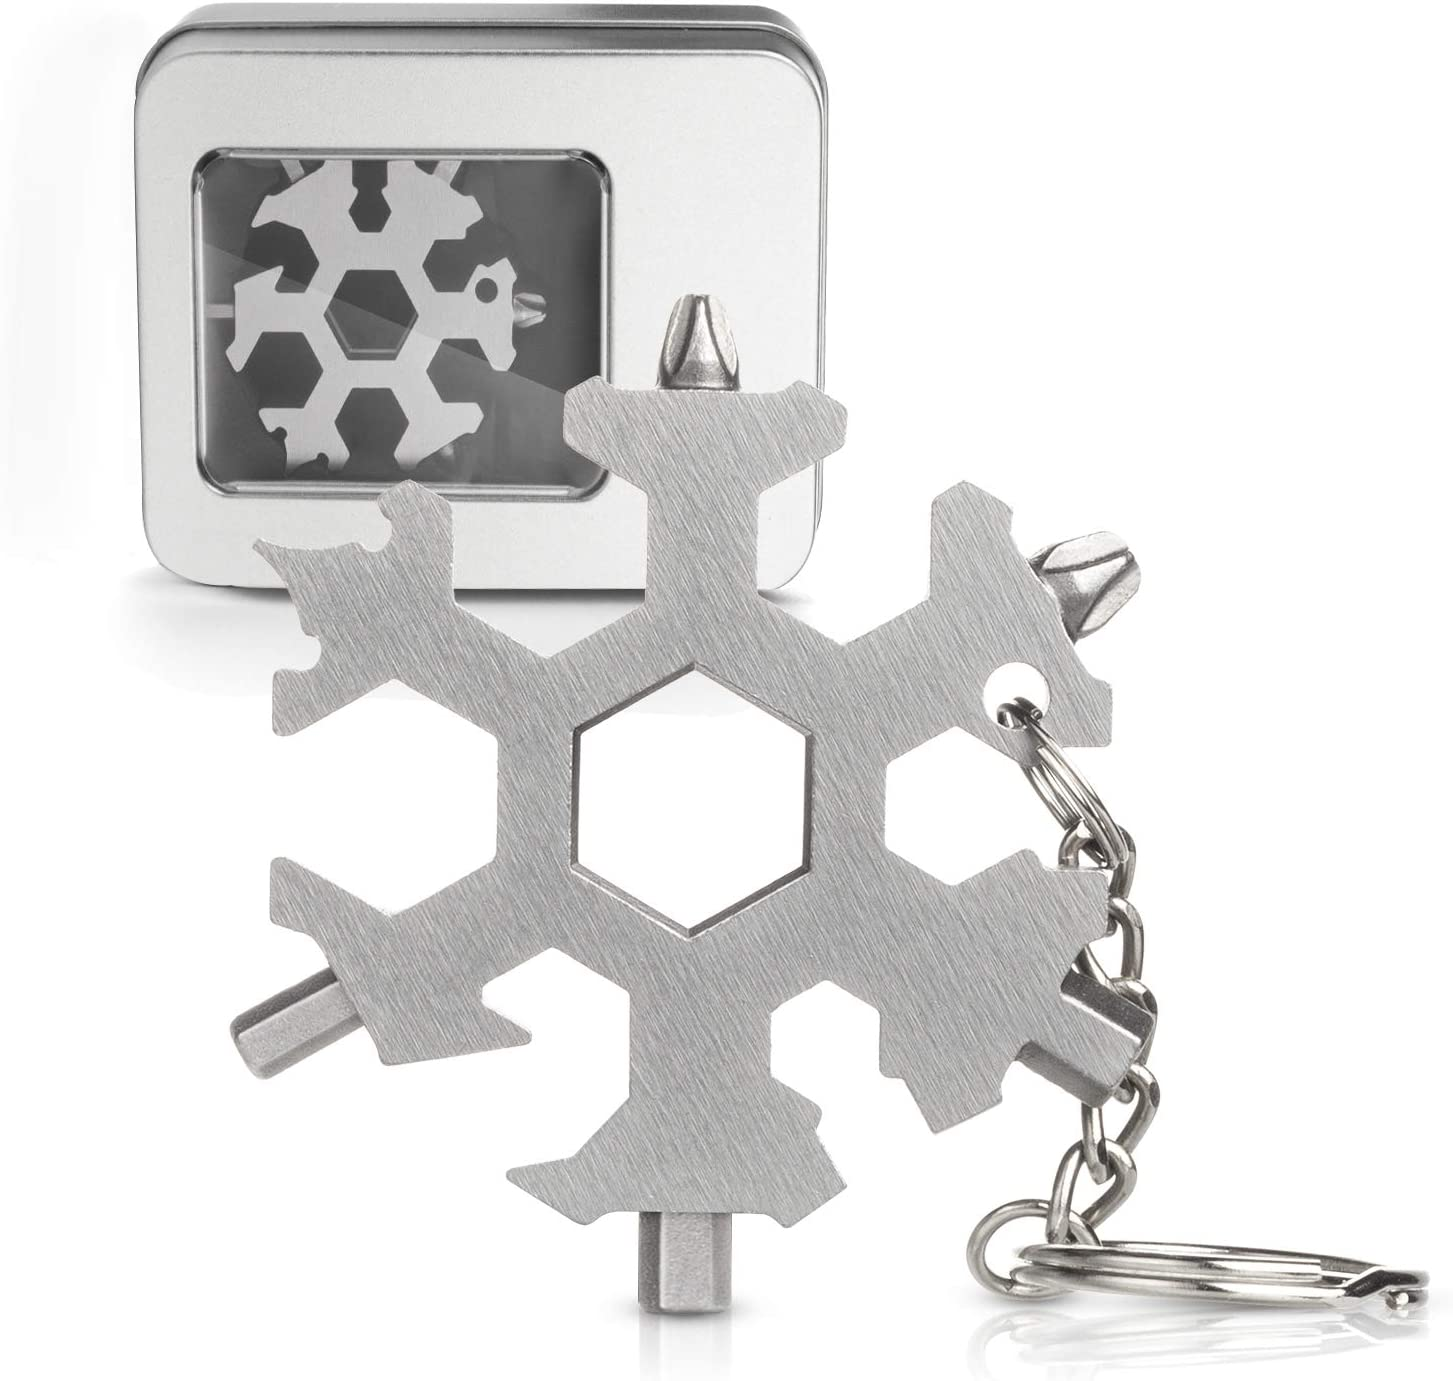 Black//3PC 18-in-1 Snowflake Multi Tool,Portable Stainless Steel Camping Snowflake Outdoor Card Screwdriver Bottle Opener Hexagonal Spanner Combination Tool for Daily Use